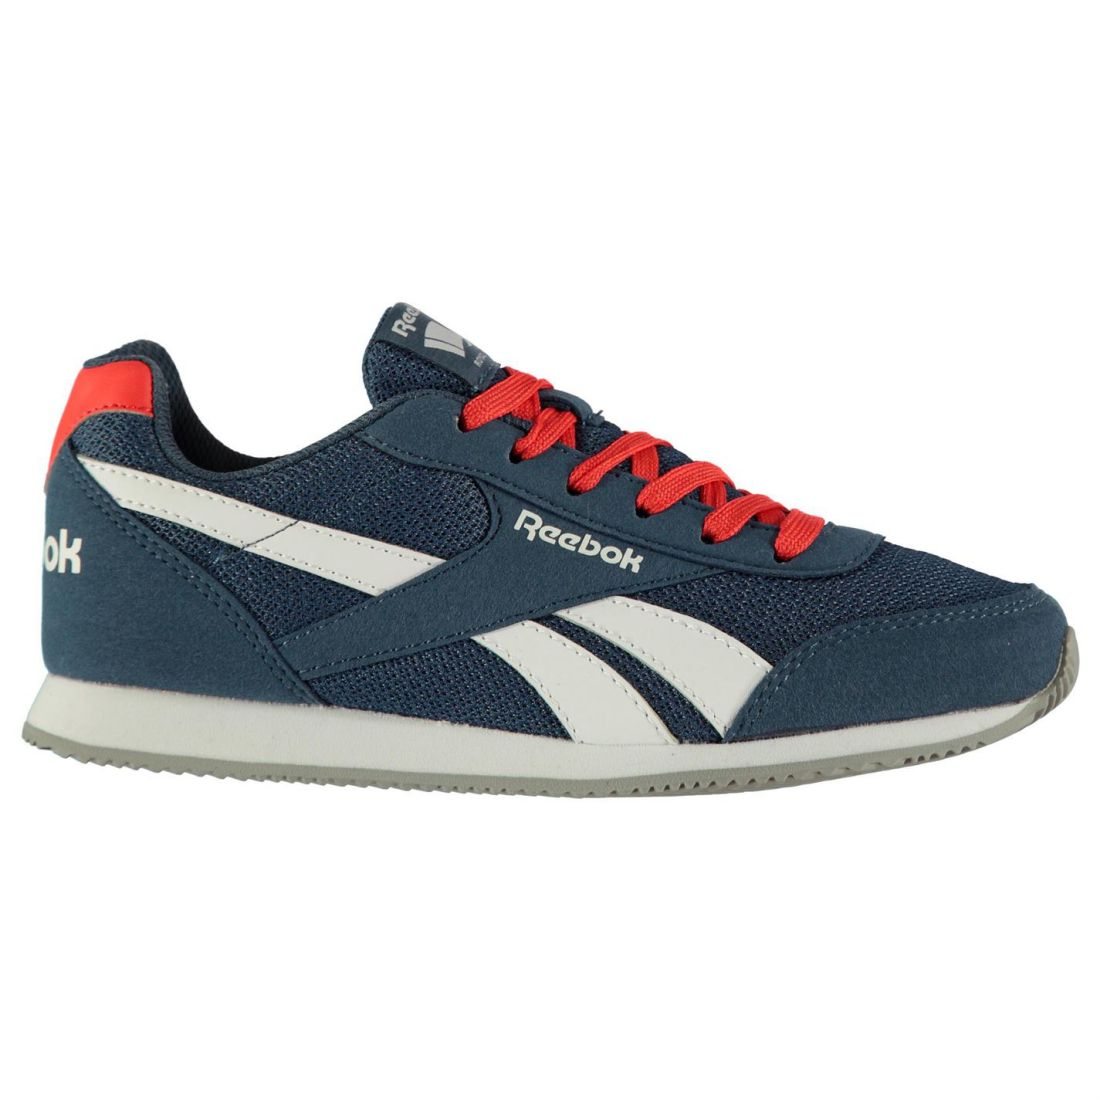 Details About Boys Footwear Rs Classic Trainers Shoes Jogger Reebok Fastened Laces Childrens TlK3cJF1